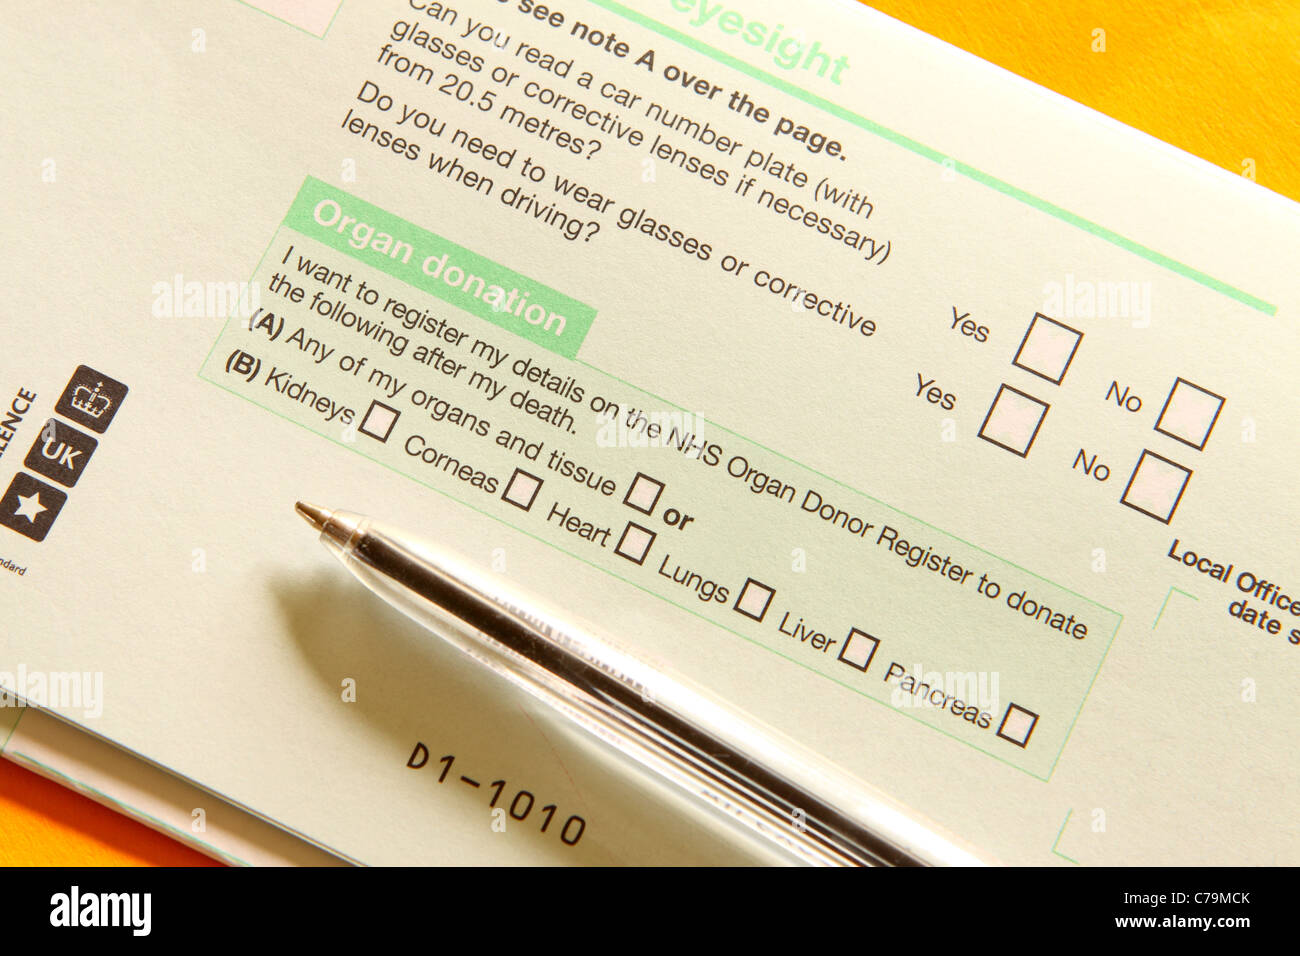 Organ donation form options on UK Driving Licence application D1 in 2011 - Stock Image